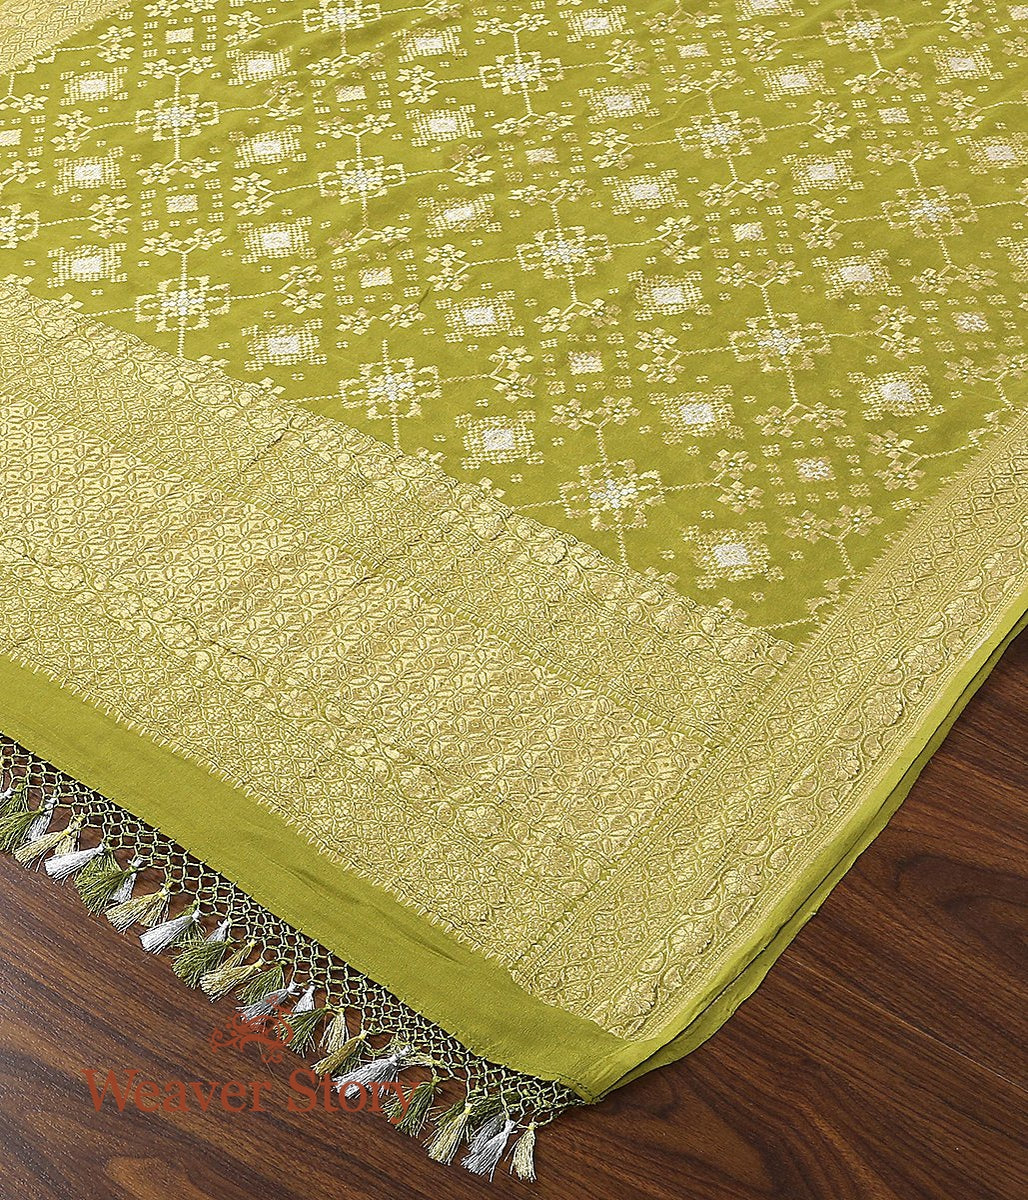 Handwoven Banarasi Georgette Cutwork Dupatta in Fresh Green